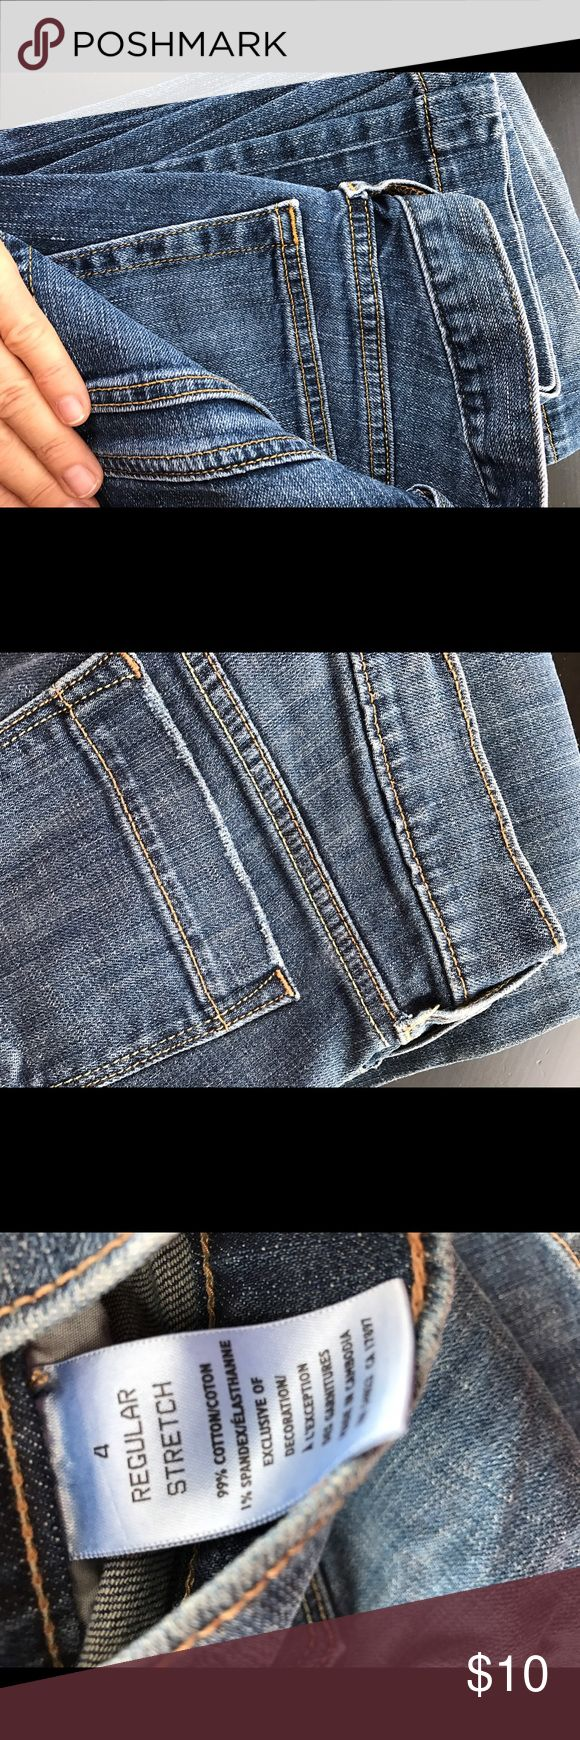 Old Navy Jeans 👖 Size 4 Stretch Good 😊 condition Size 4 Stretch cuffed bottoms adorable. Old Navy Jeans Boot Cut